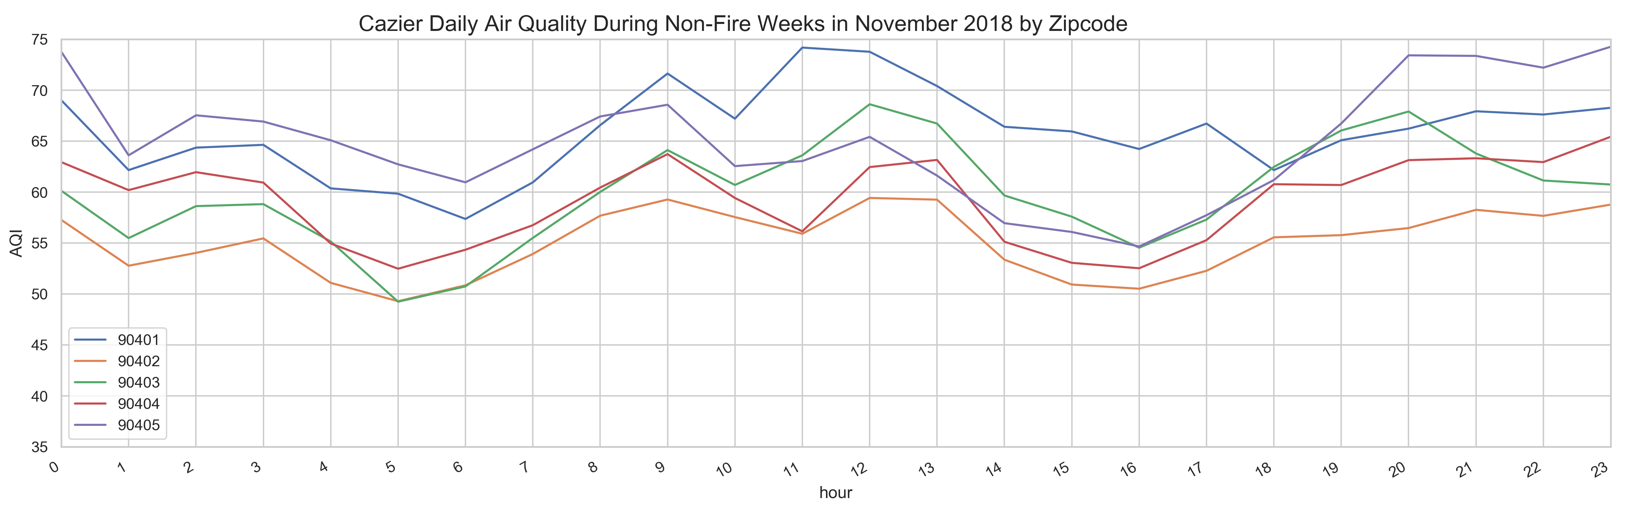 Average hourly air quality on non-fire days, by Santa Monica ZIP code, in November 2018